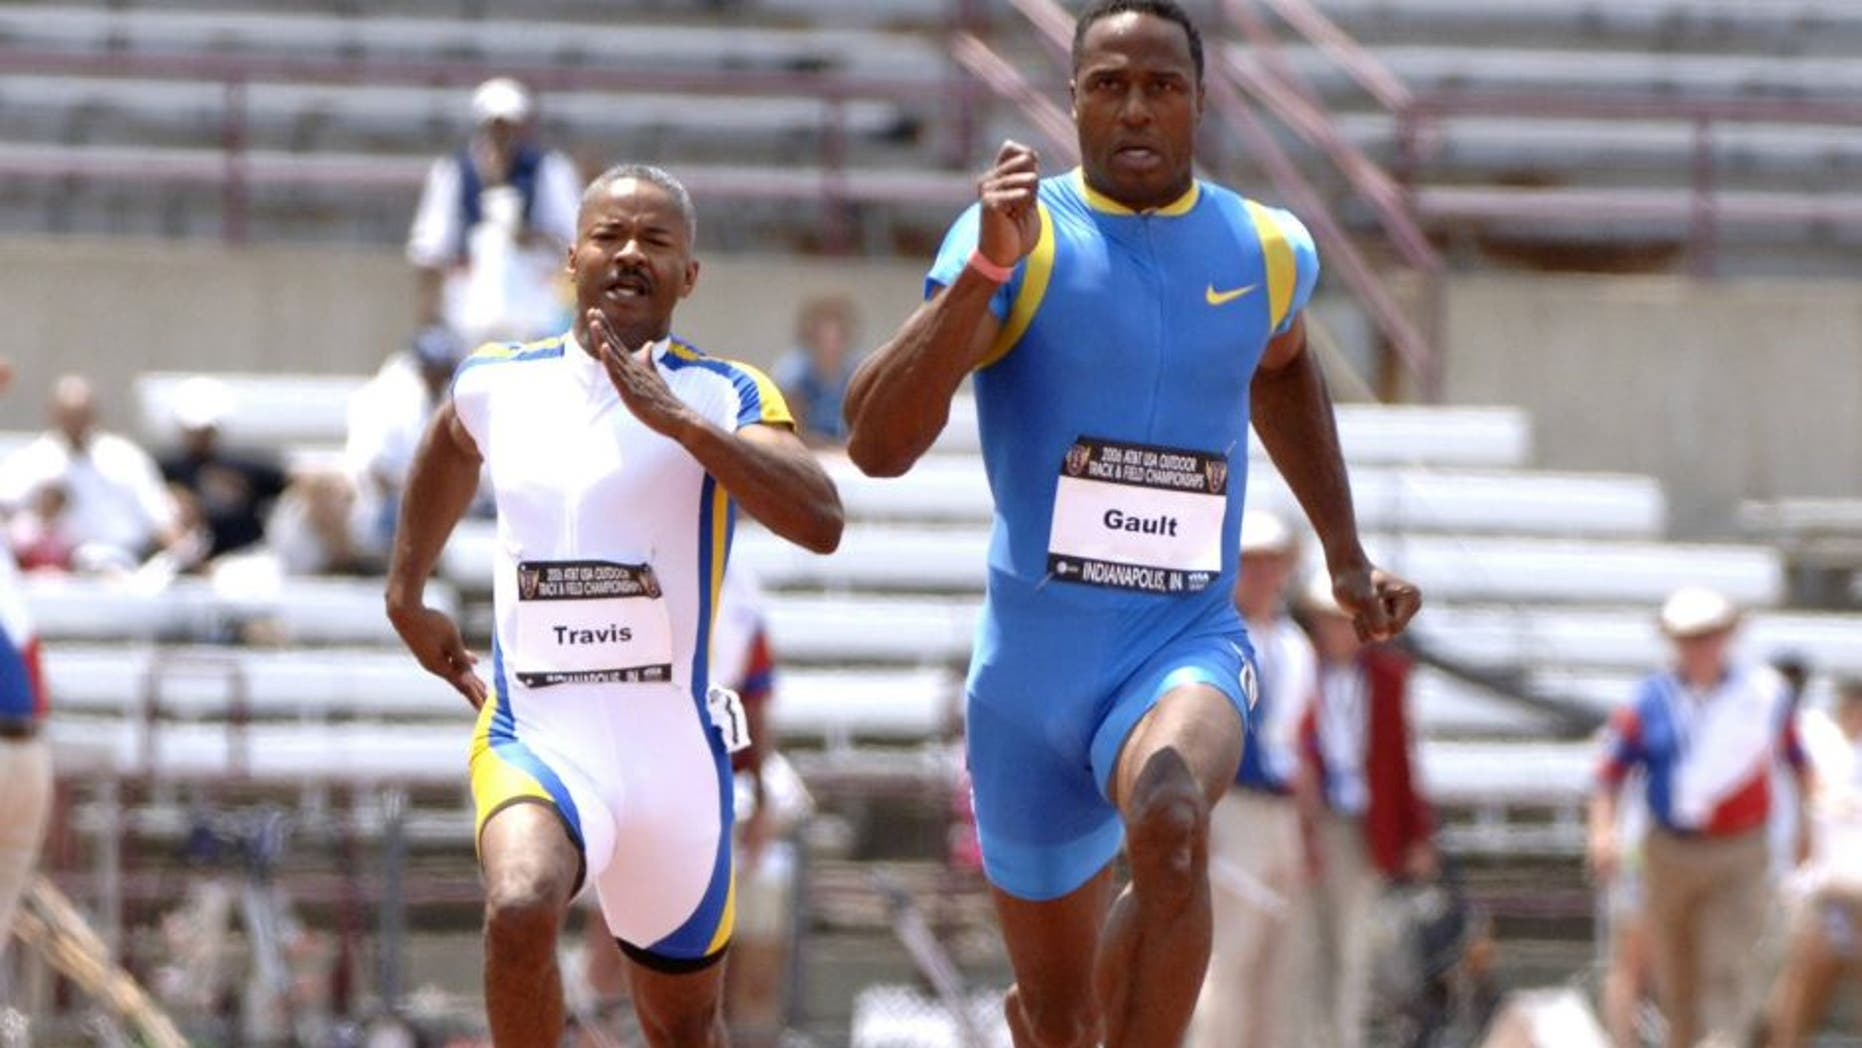 Willie Gault , former Chicago Bears wide receiver, wins the men's 100 meter dash in the masters division June 24 at the 2006 AT&T Outdoor Track and Field Championships in Indianapolis. (Photo by A. Messerschmidt/Getty Images)